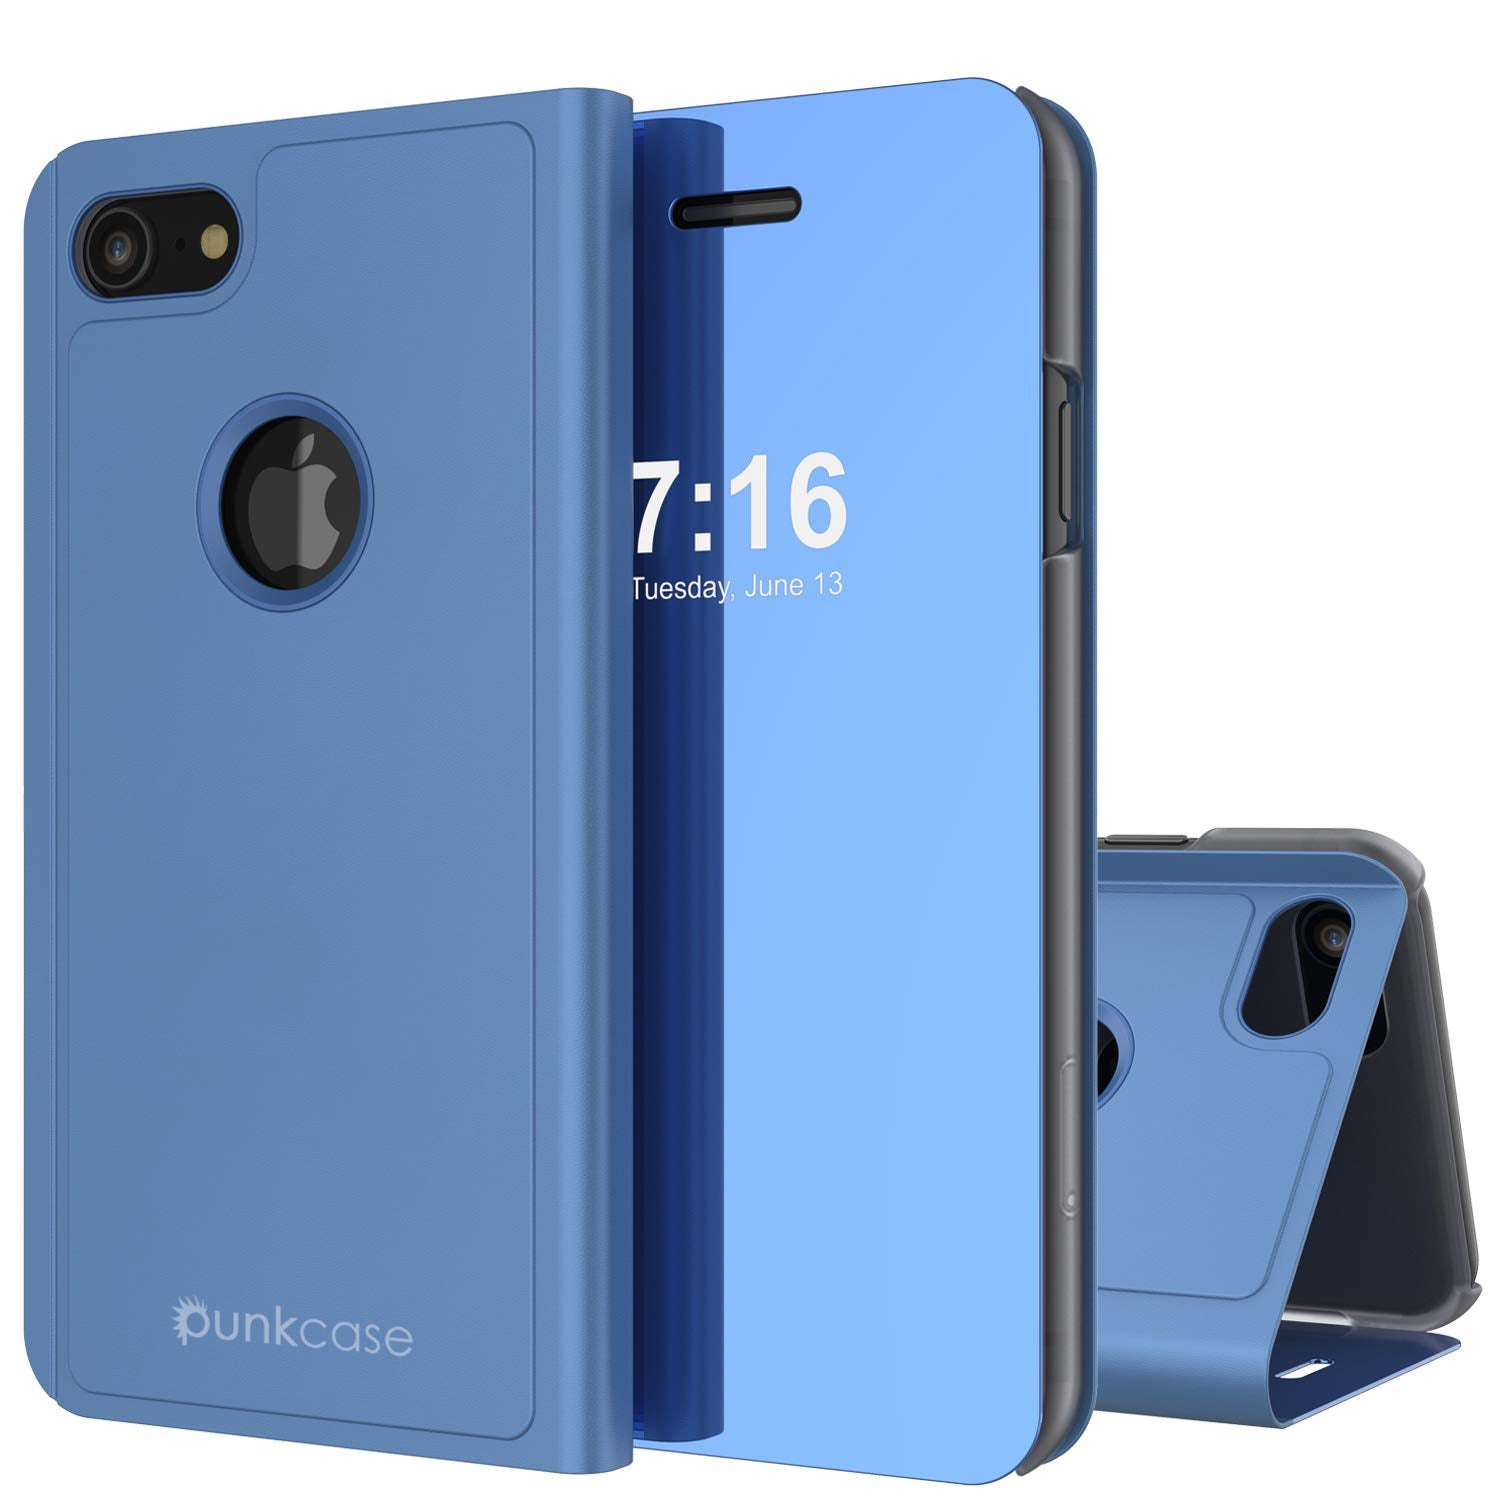 Punkcase iPhone 8 Reflector Case Protective Flip Cover [Blue]